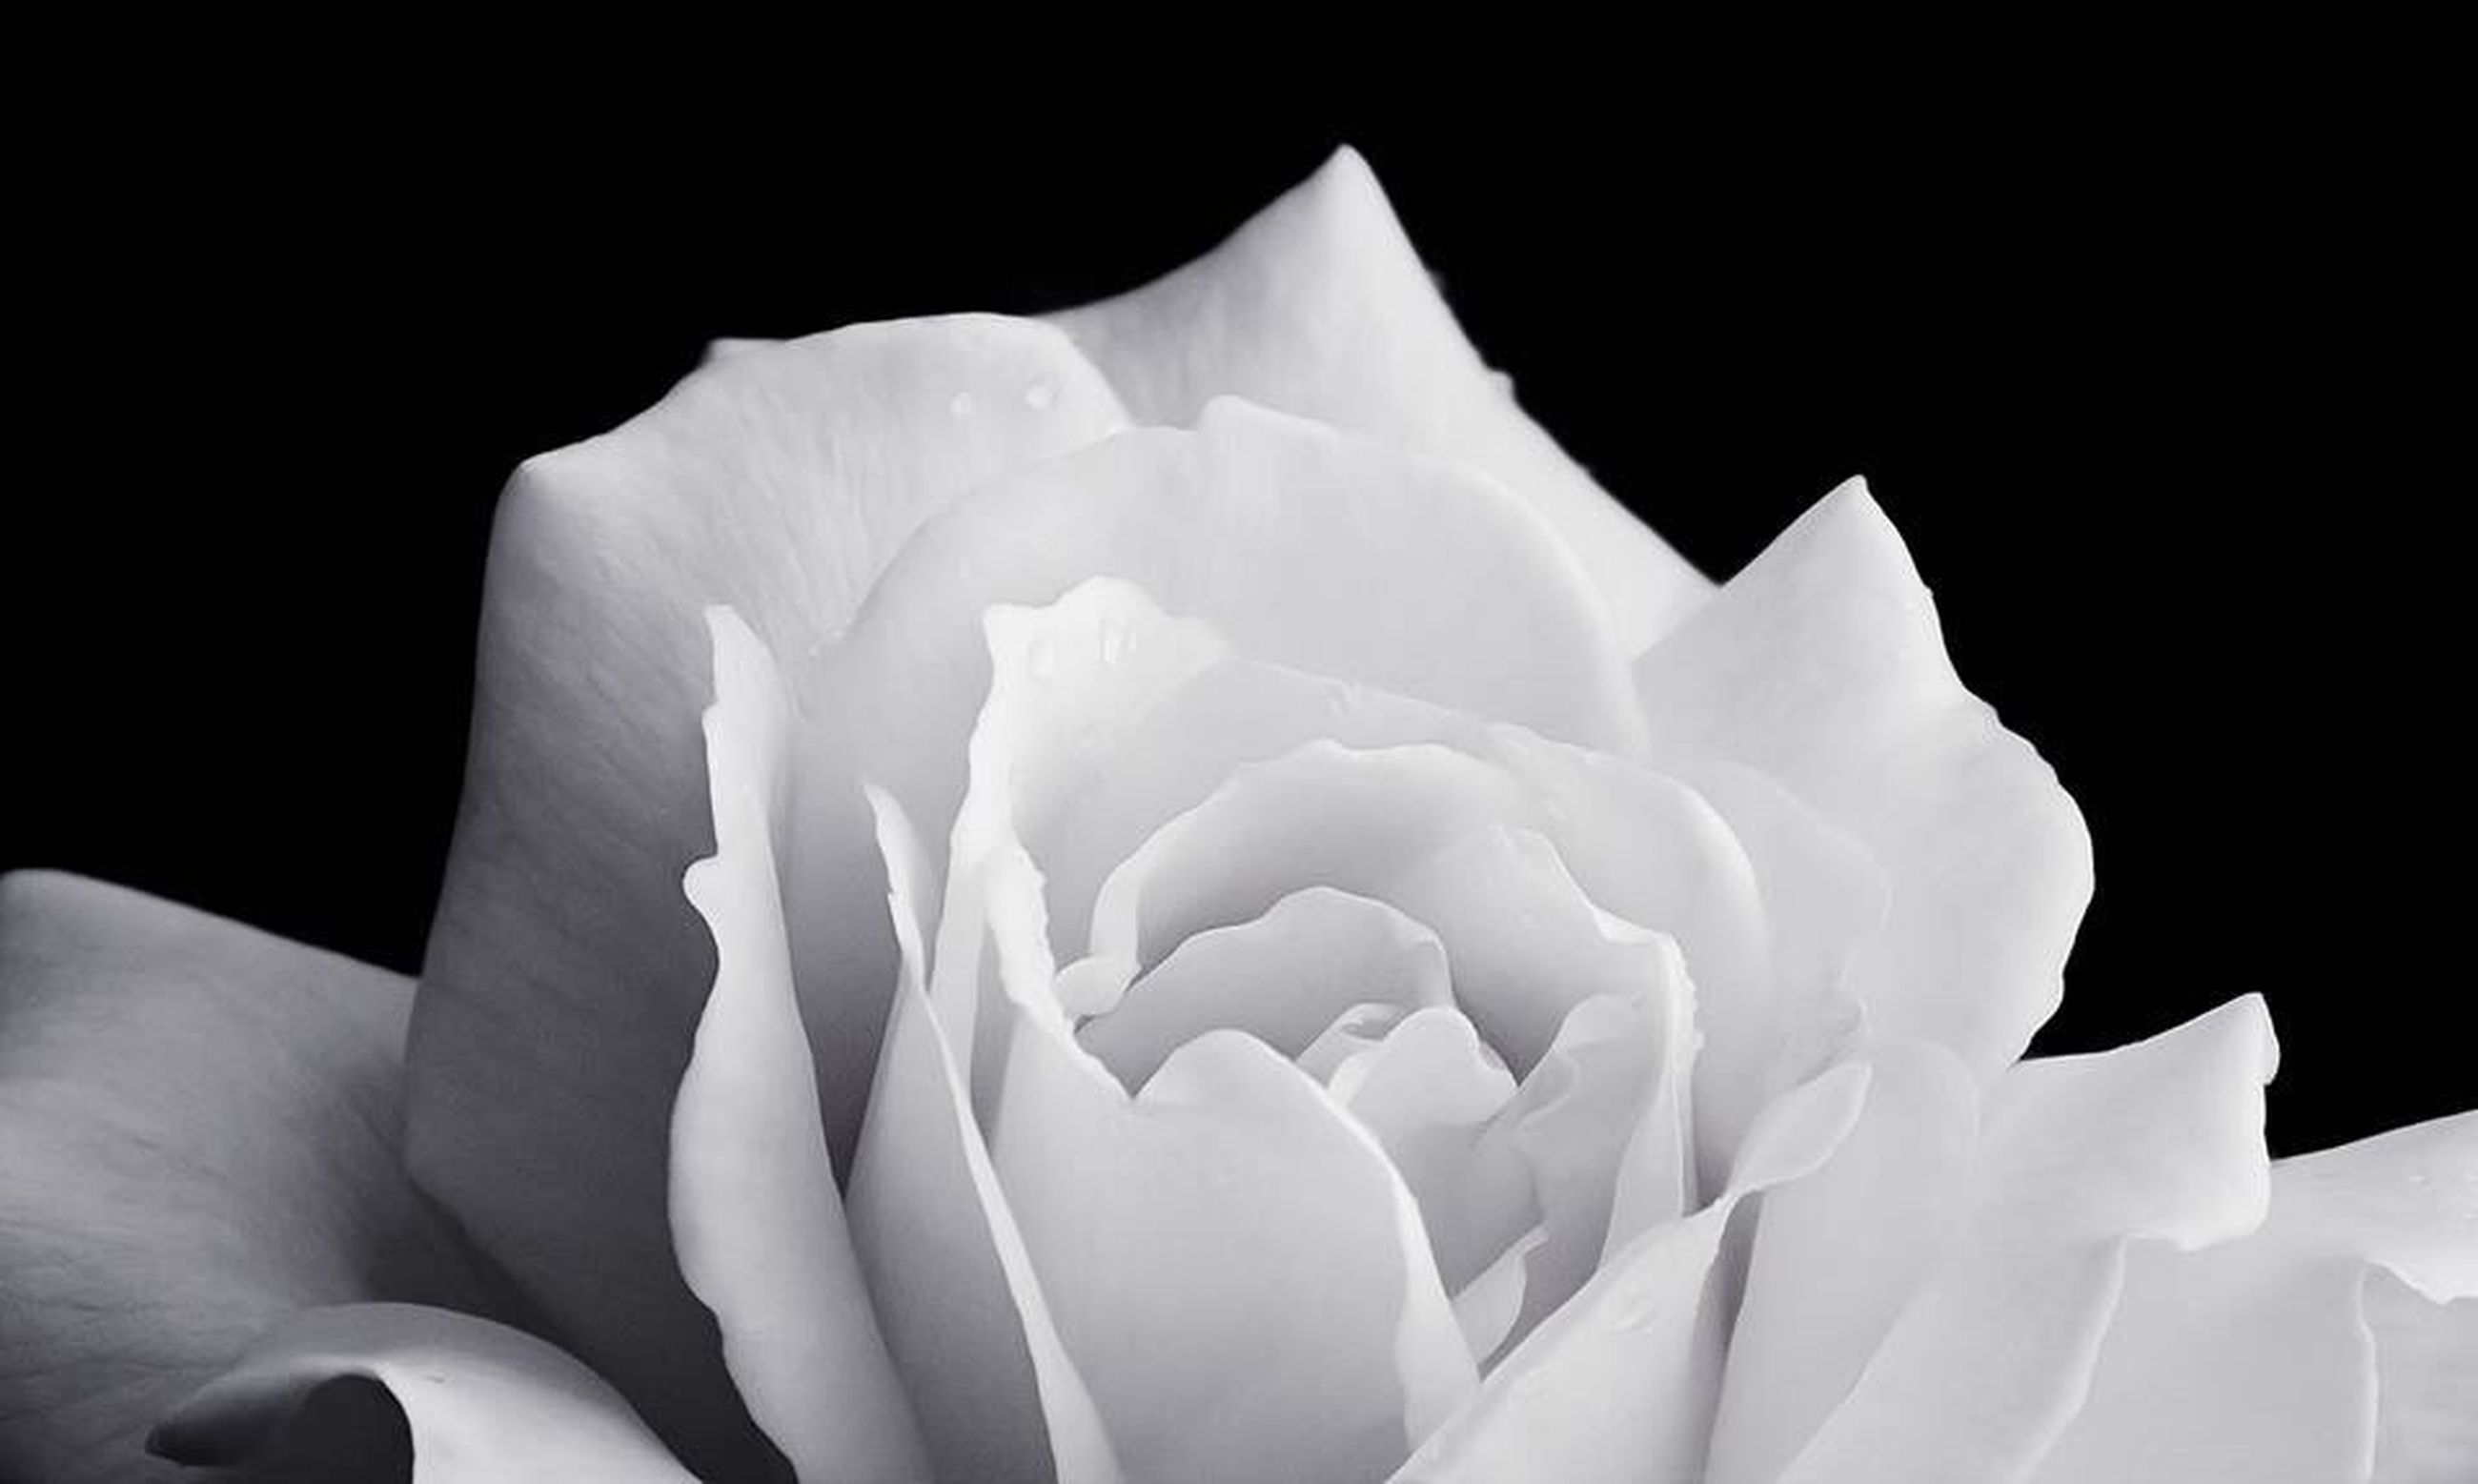 petal, flower, flower head, fragility, studio shot, white color, freshness, black background, beauty in nature, close-up, single flower, white, nature, growth, blooming, copy space, no people, softness, in bloom, bloom